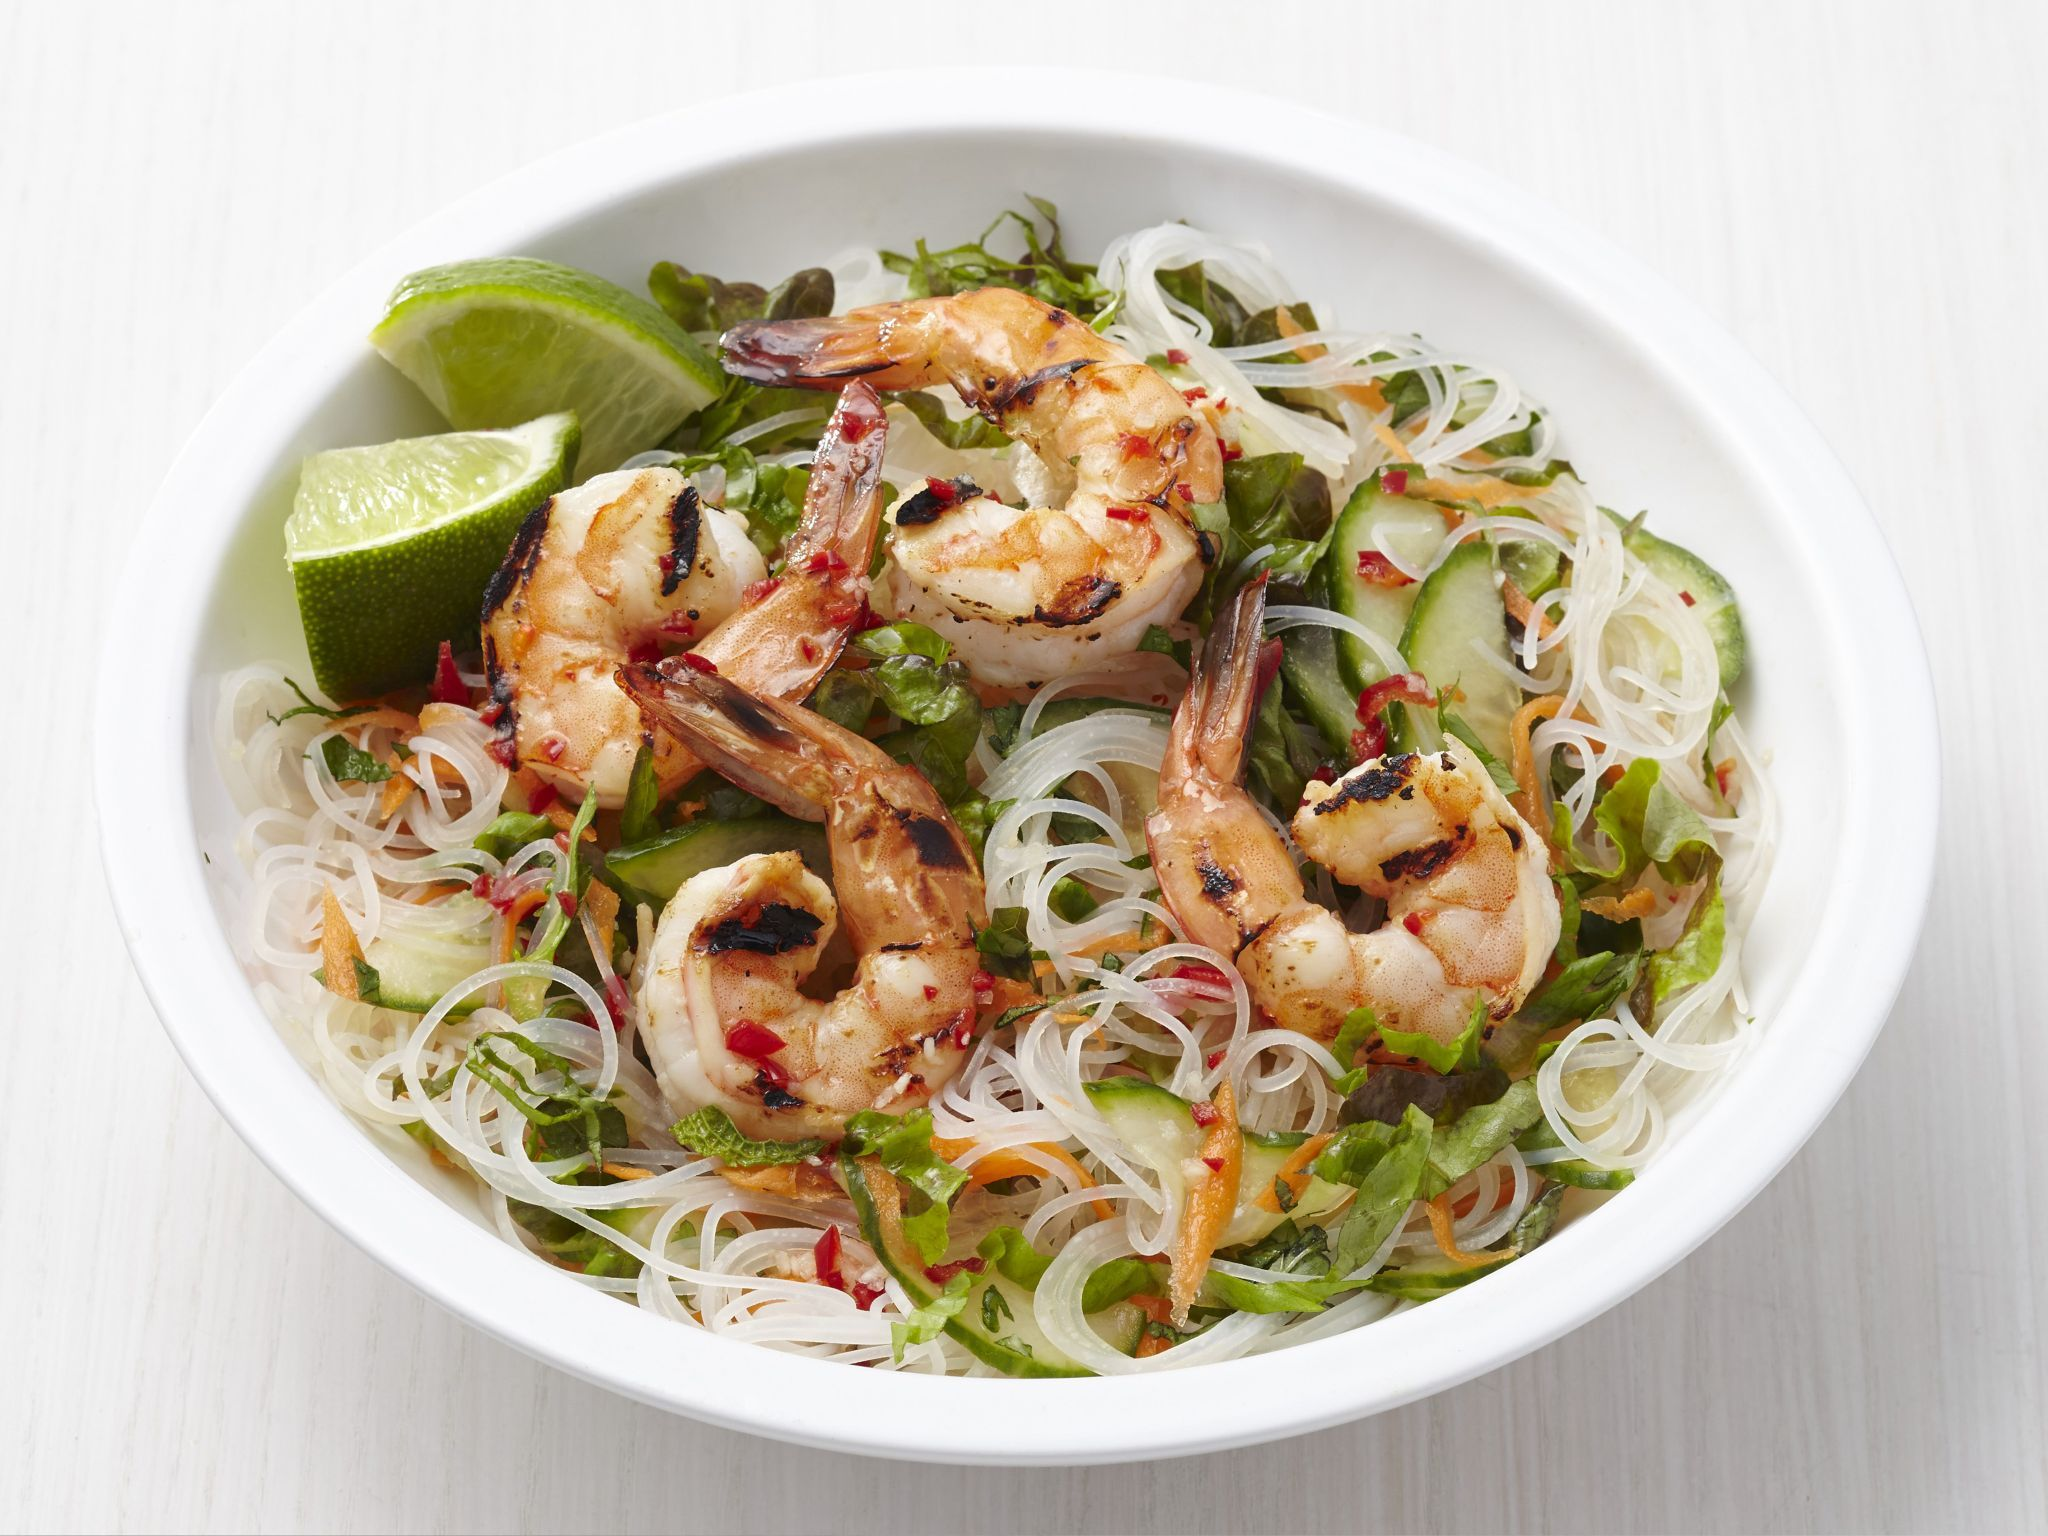 Healthy shrimp recipes on a budget food network rice noodles rice noodle salad with shrimp recipe food network kitchen food network this looks good would make a nice change but it calls for some specialty forumfinder Choice Image